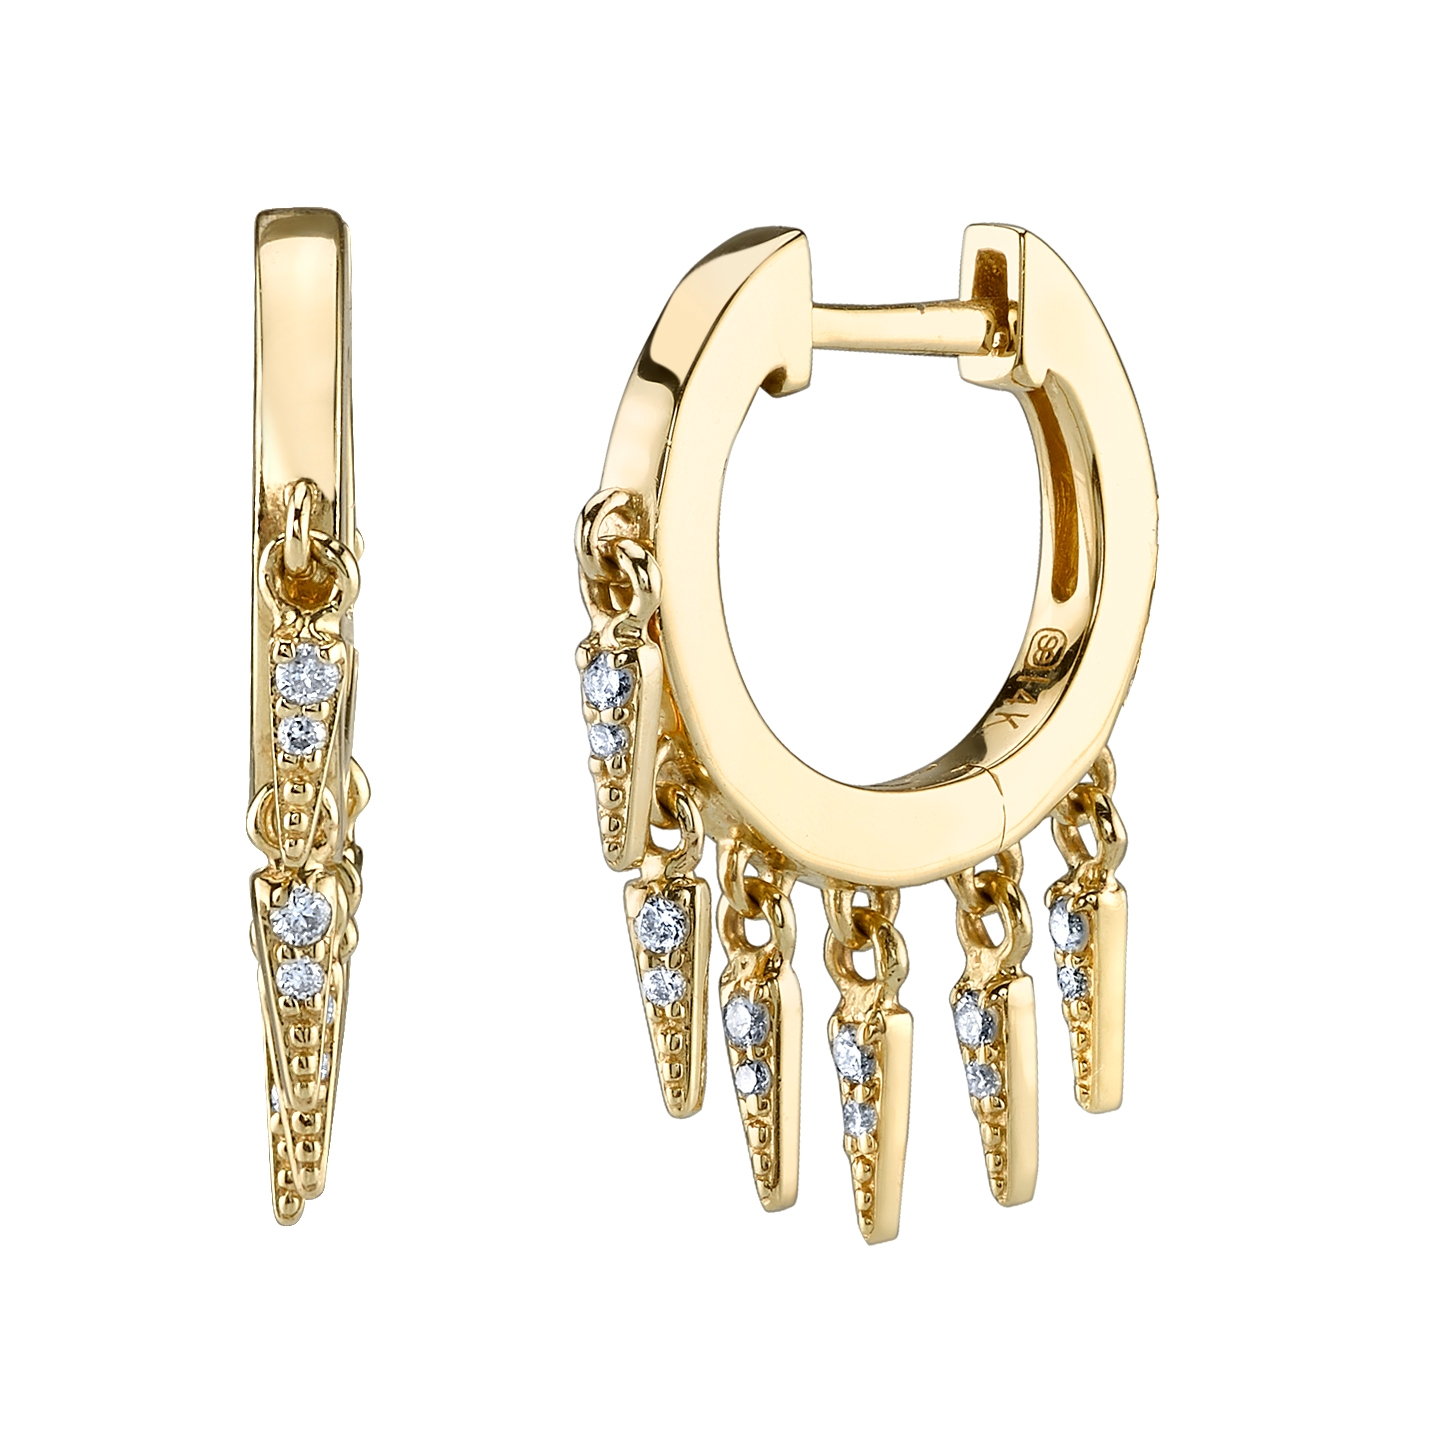 SYDNEY EVAN 14CT YELLOW GOLD AND DIAMOND FRINGE HUGGIE HOOP EARRINGS